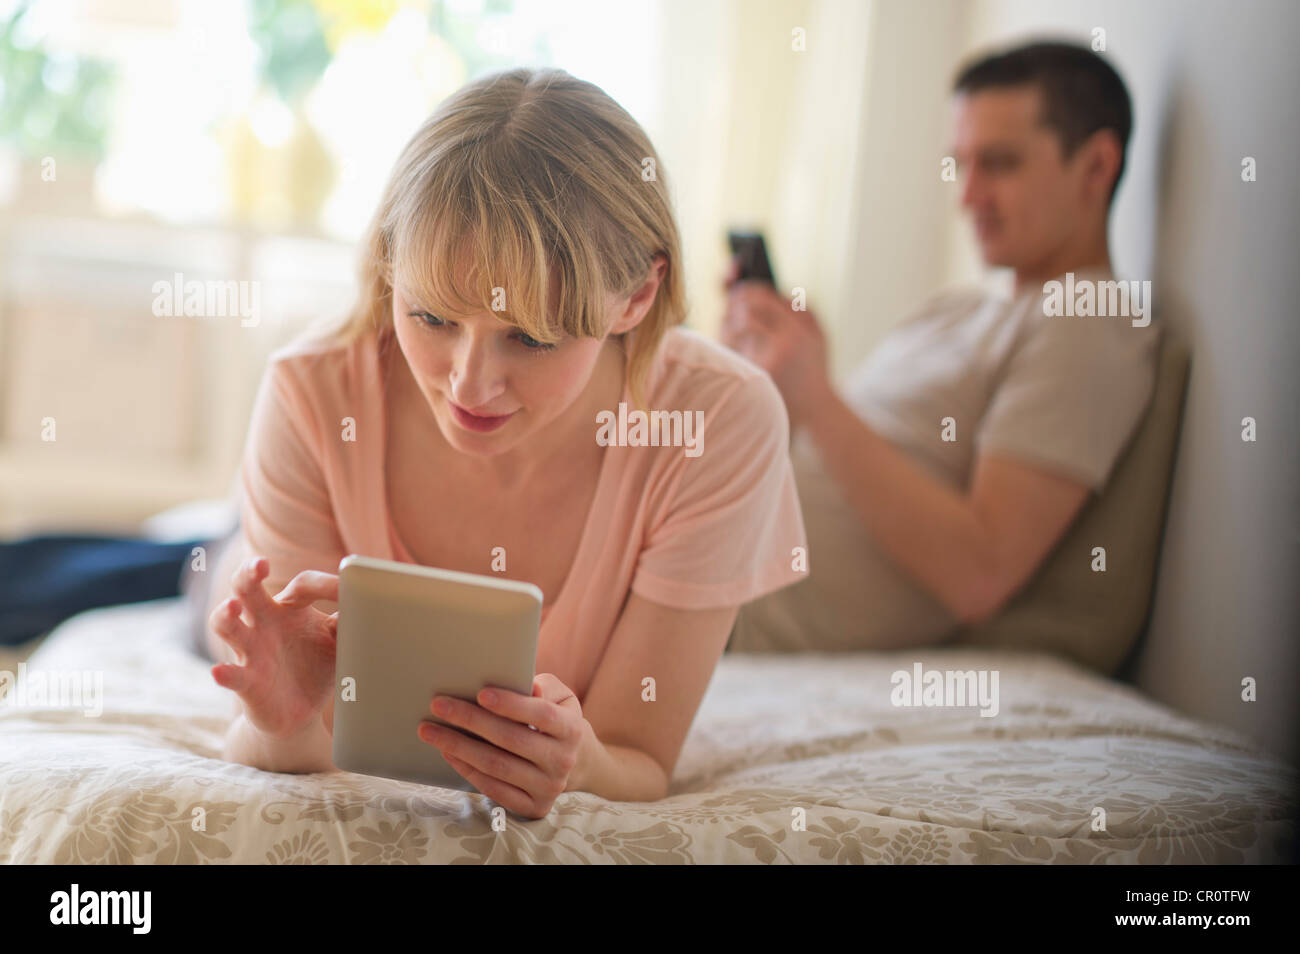 USA, New Jersey, Jersey City, Couple lying on bed and using digital devices - Stock Image